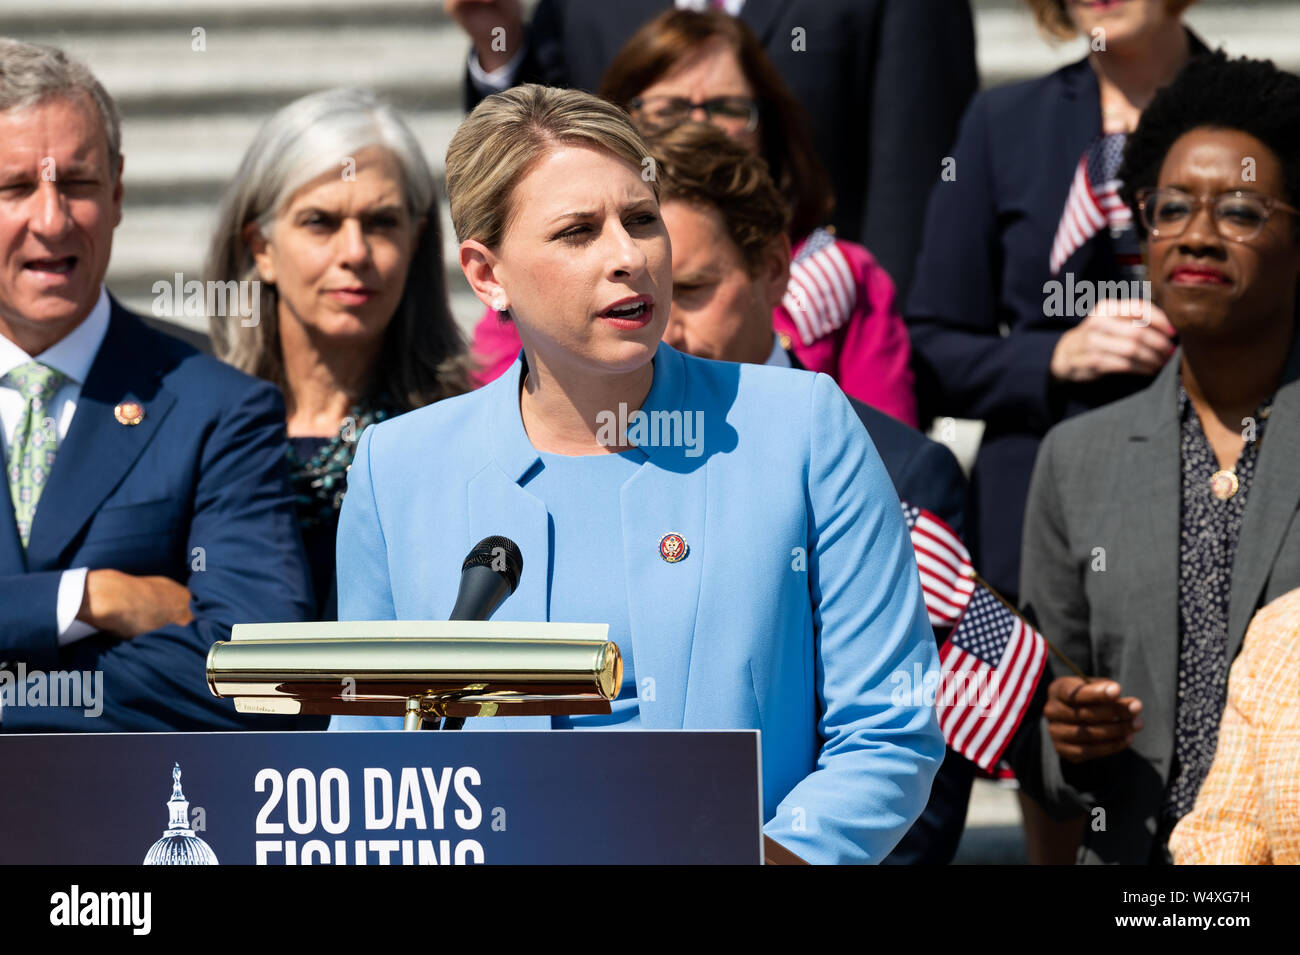 Rep. Katie Hill releases video statement after announcing